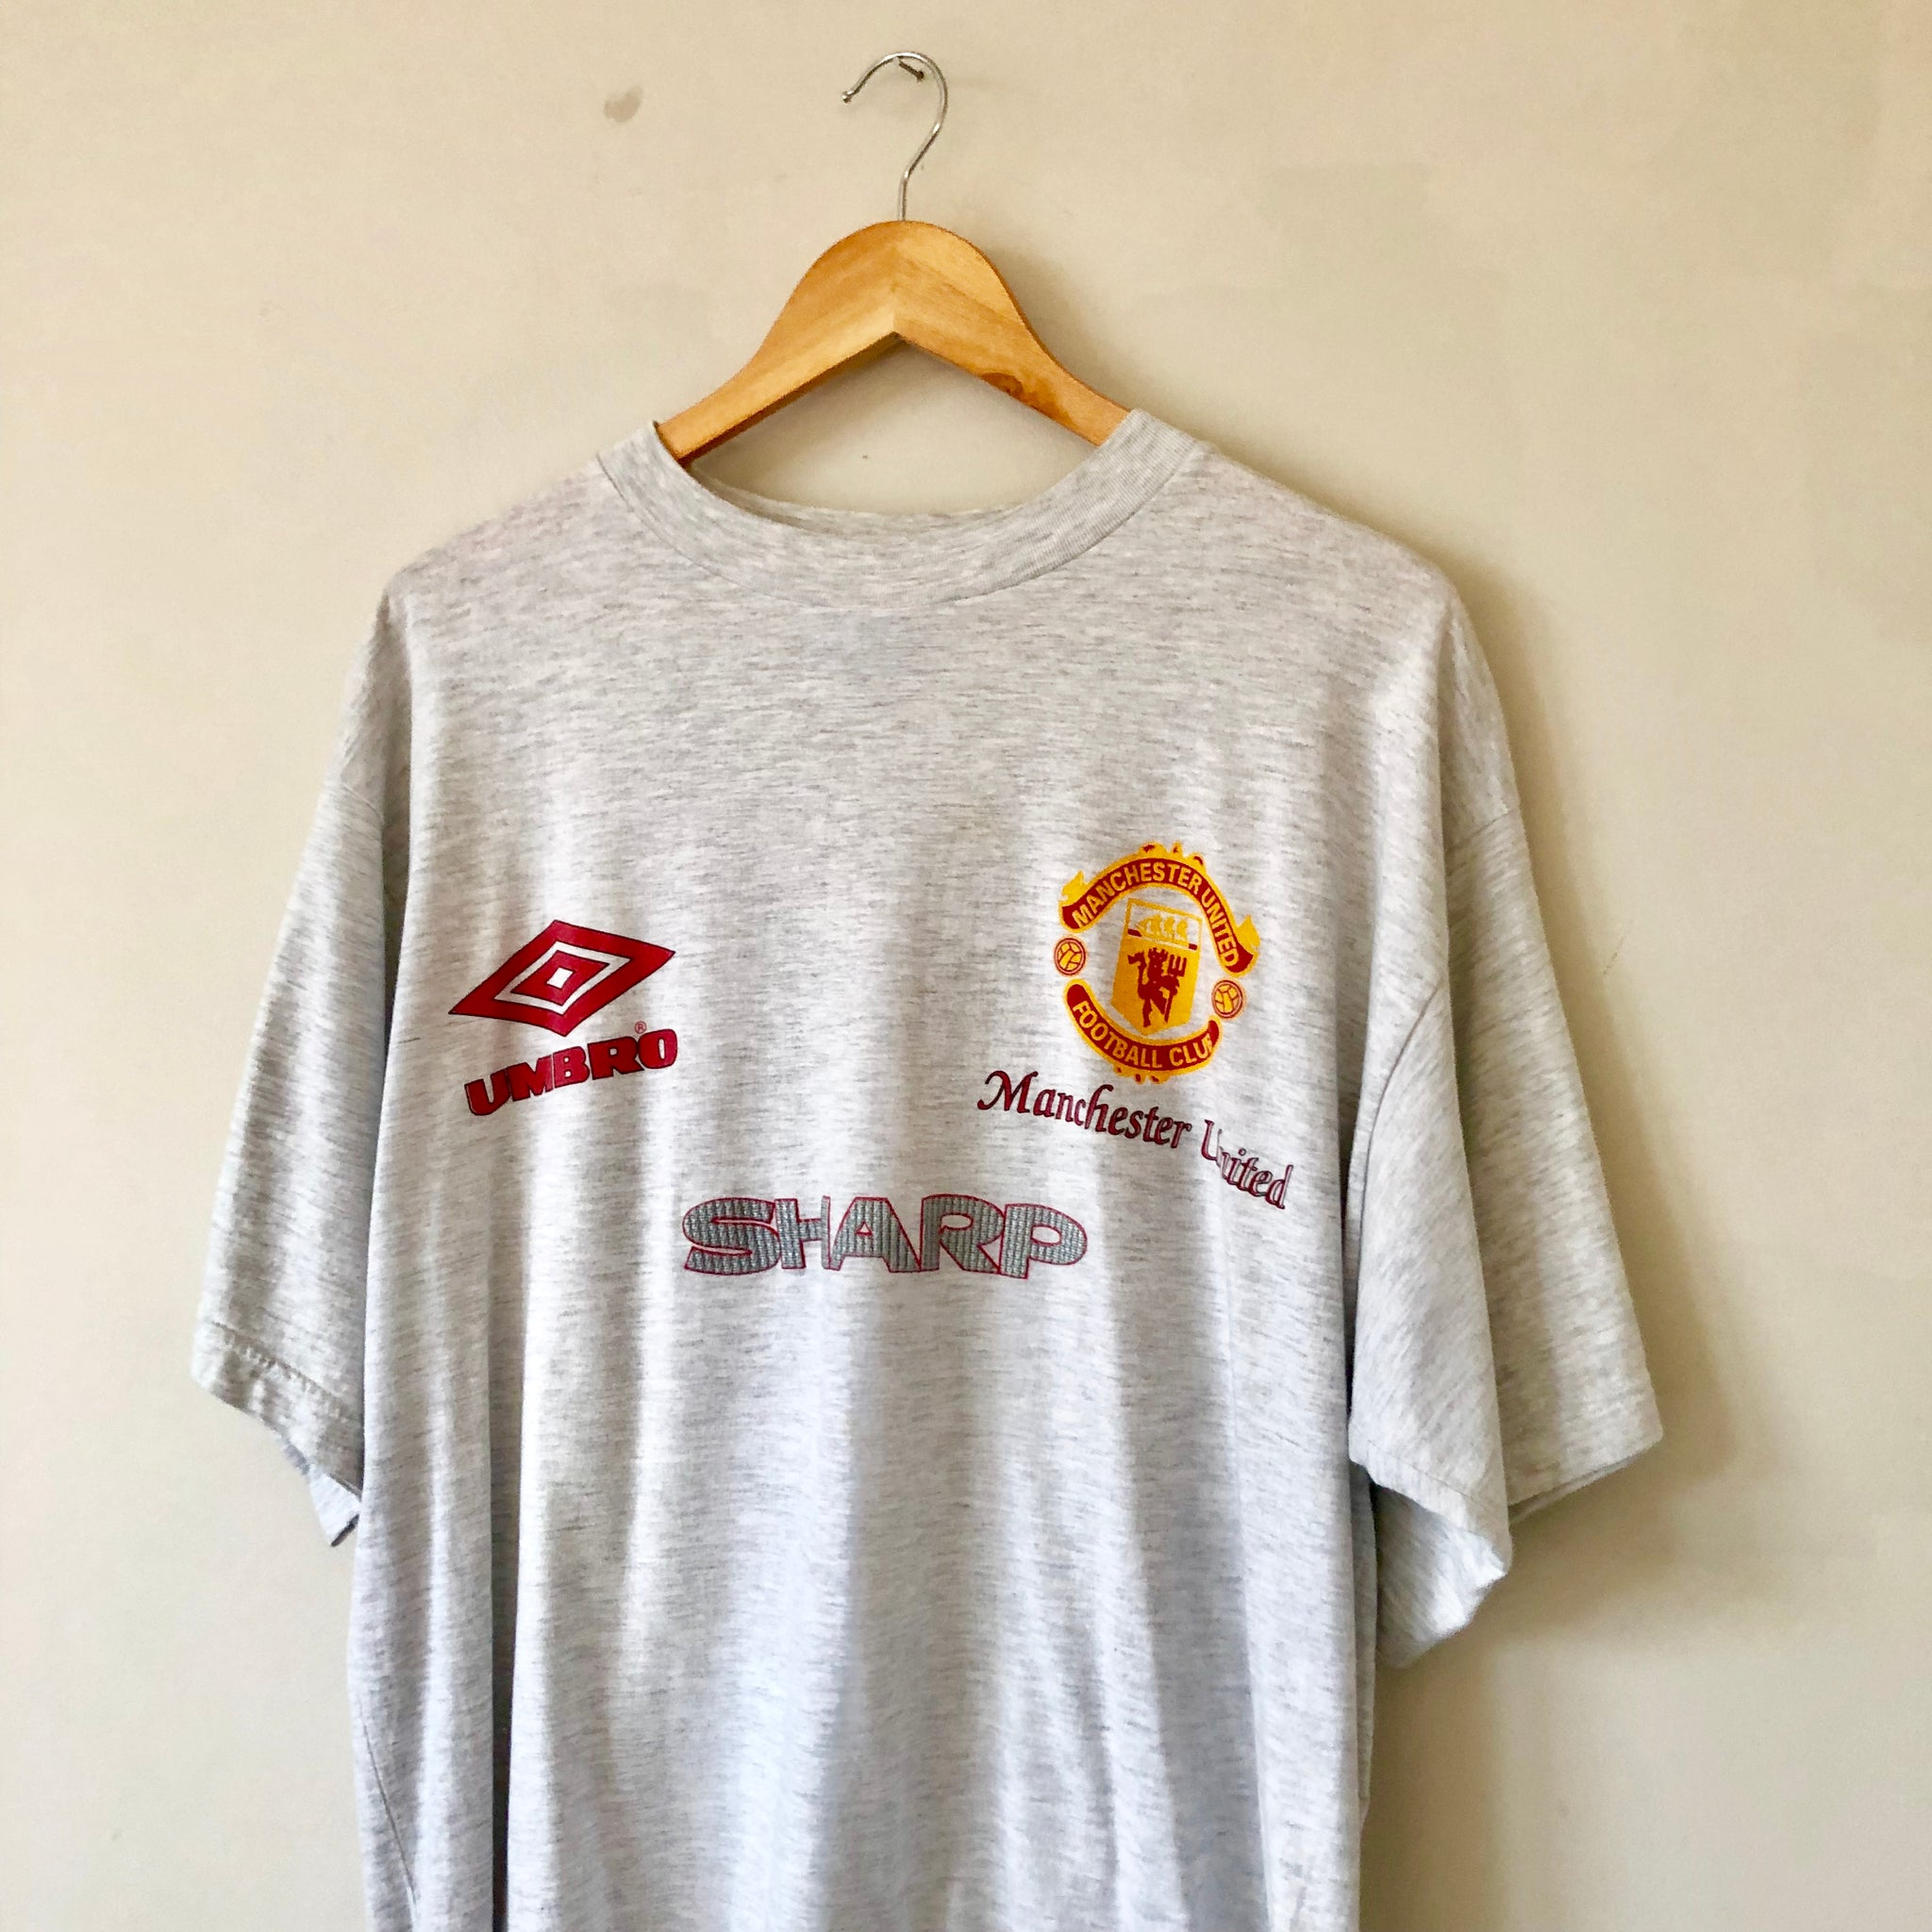 ed81a59afd1 Vintage Umbro Manchester United T Shirt - XL – archivemanchester